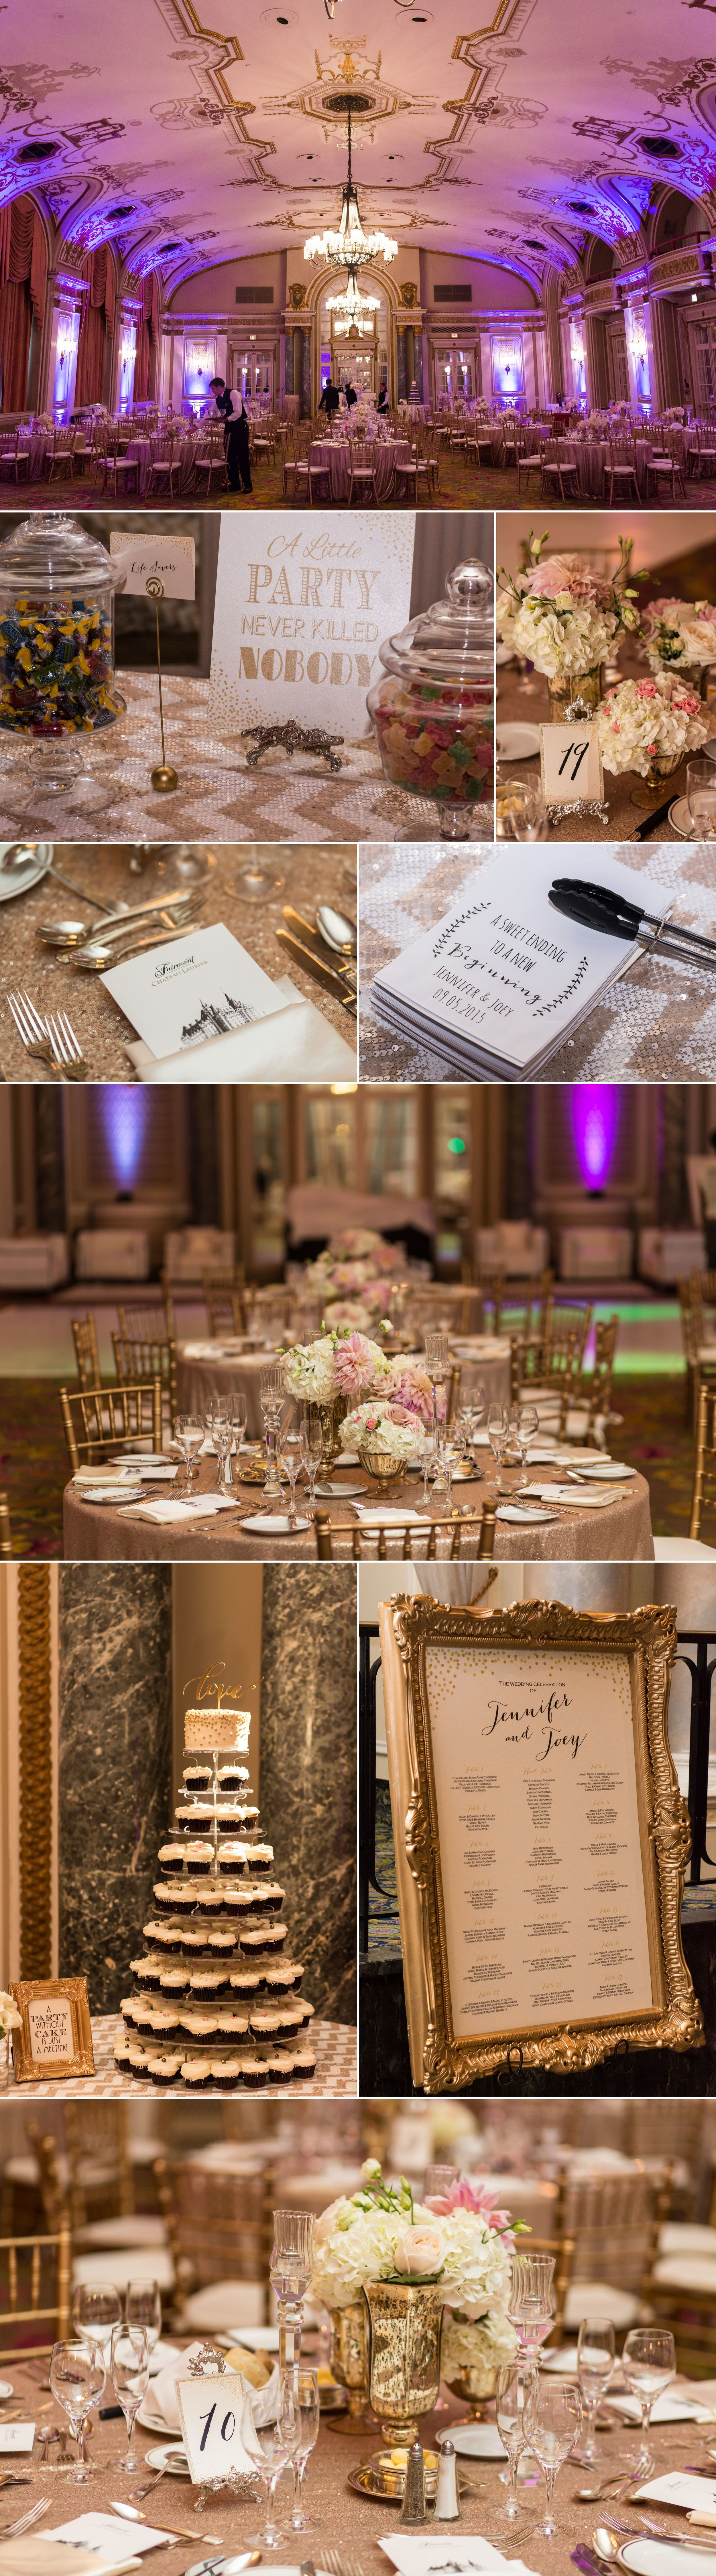 Wedding decorations in the ballroom of the chateau laurier